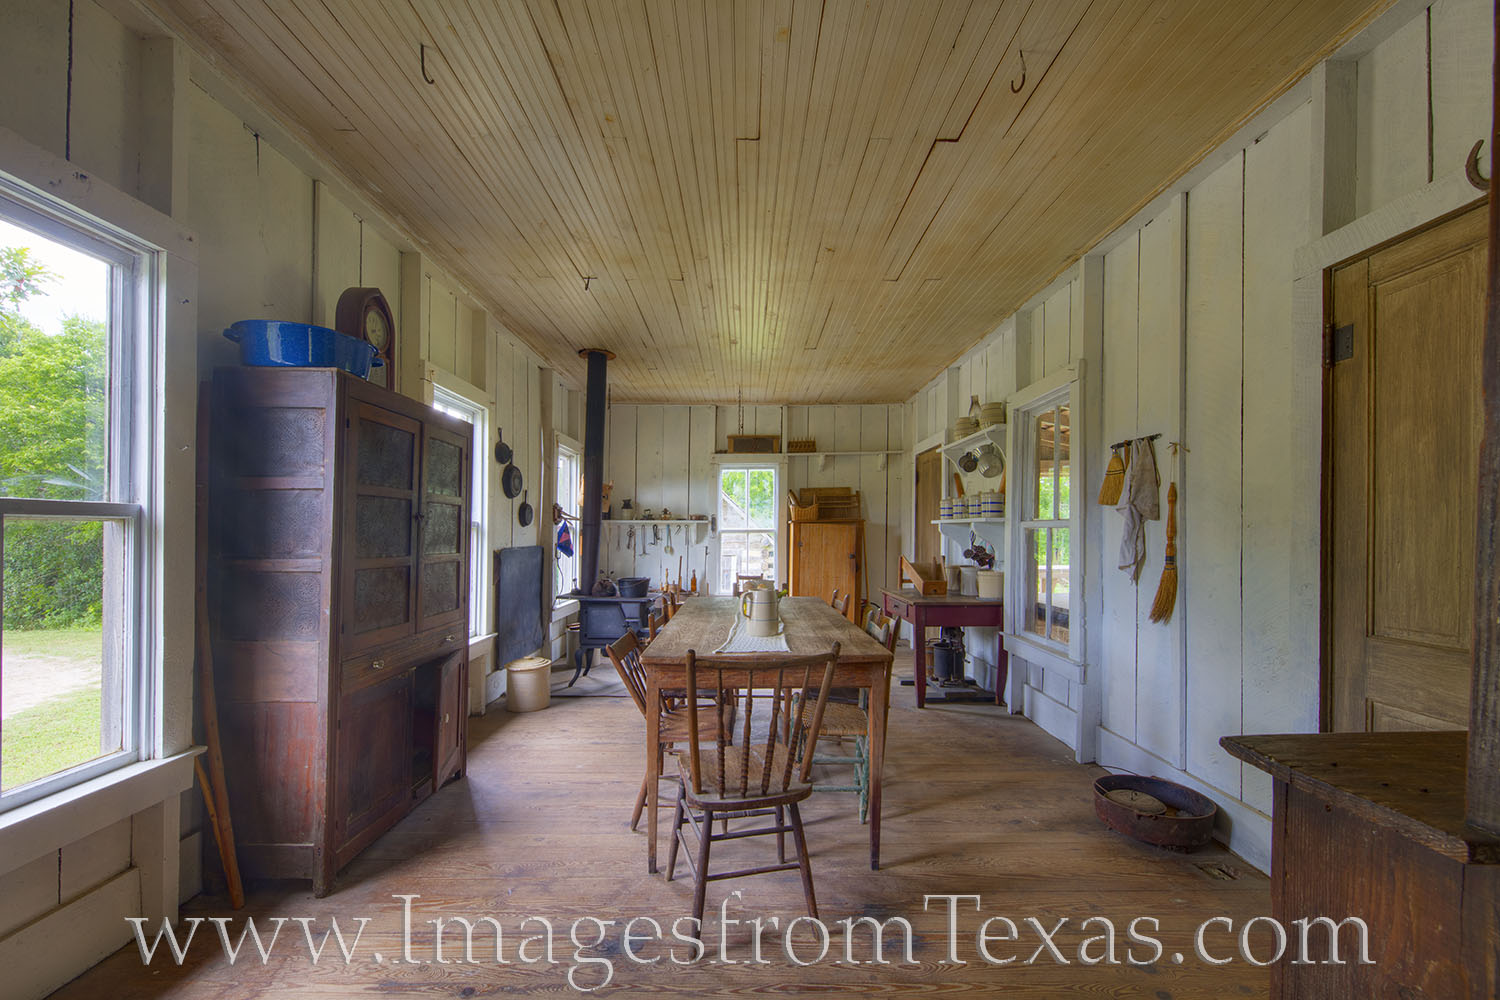 This interior view shows the kitchen of an old homestead. Visitors at the Jourdan-Bachman Pioneer Farm are invited to explore...